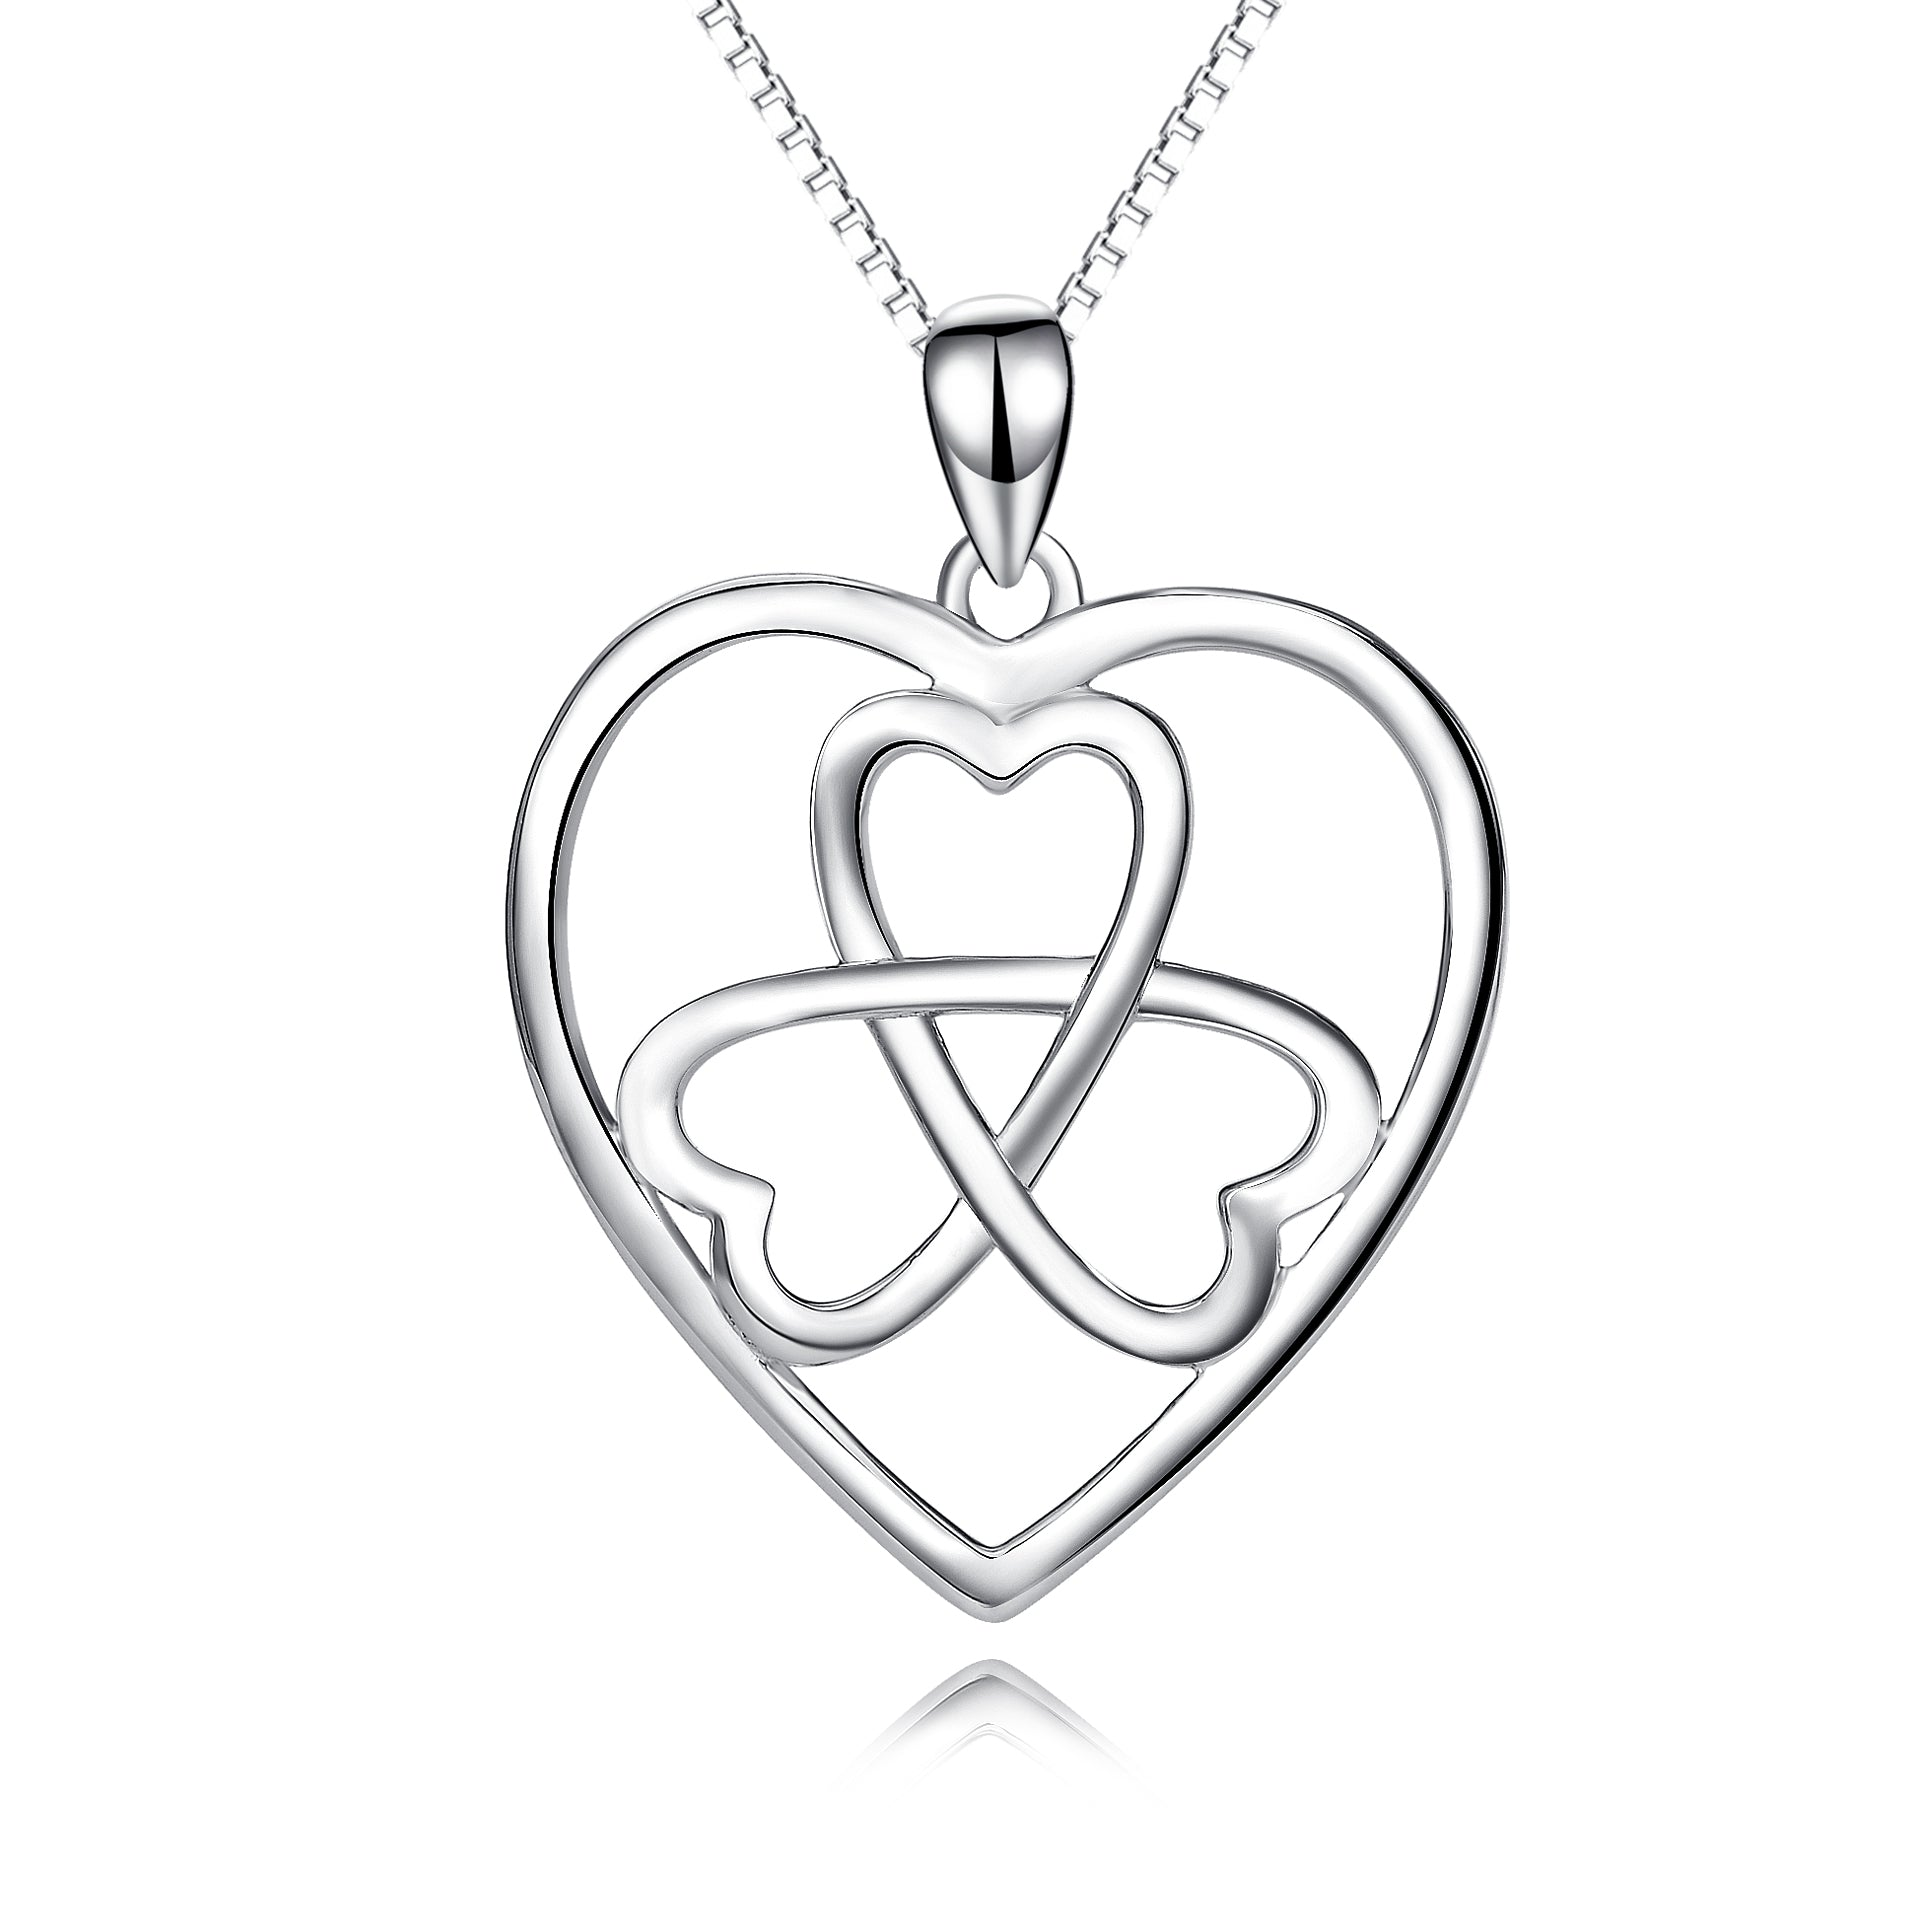 925 Sterling Silver Love Heart Lucky Clover With Adjustable Chain Necklace